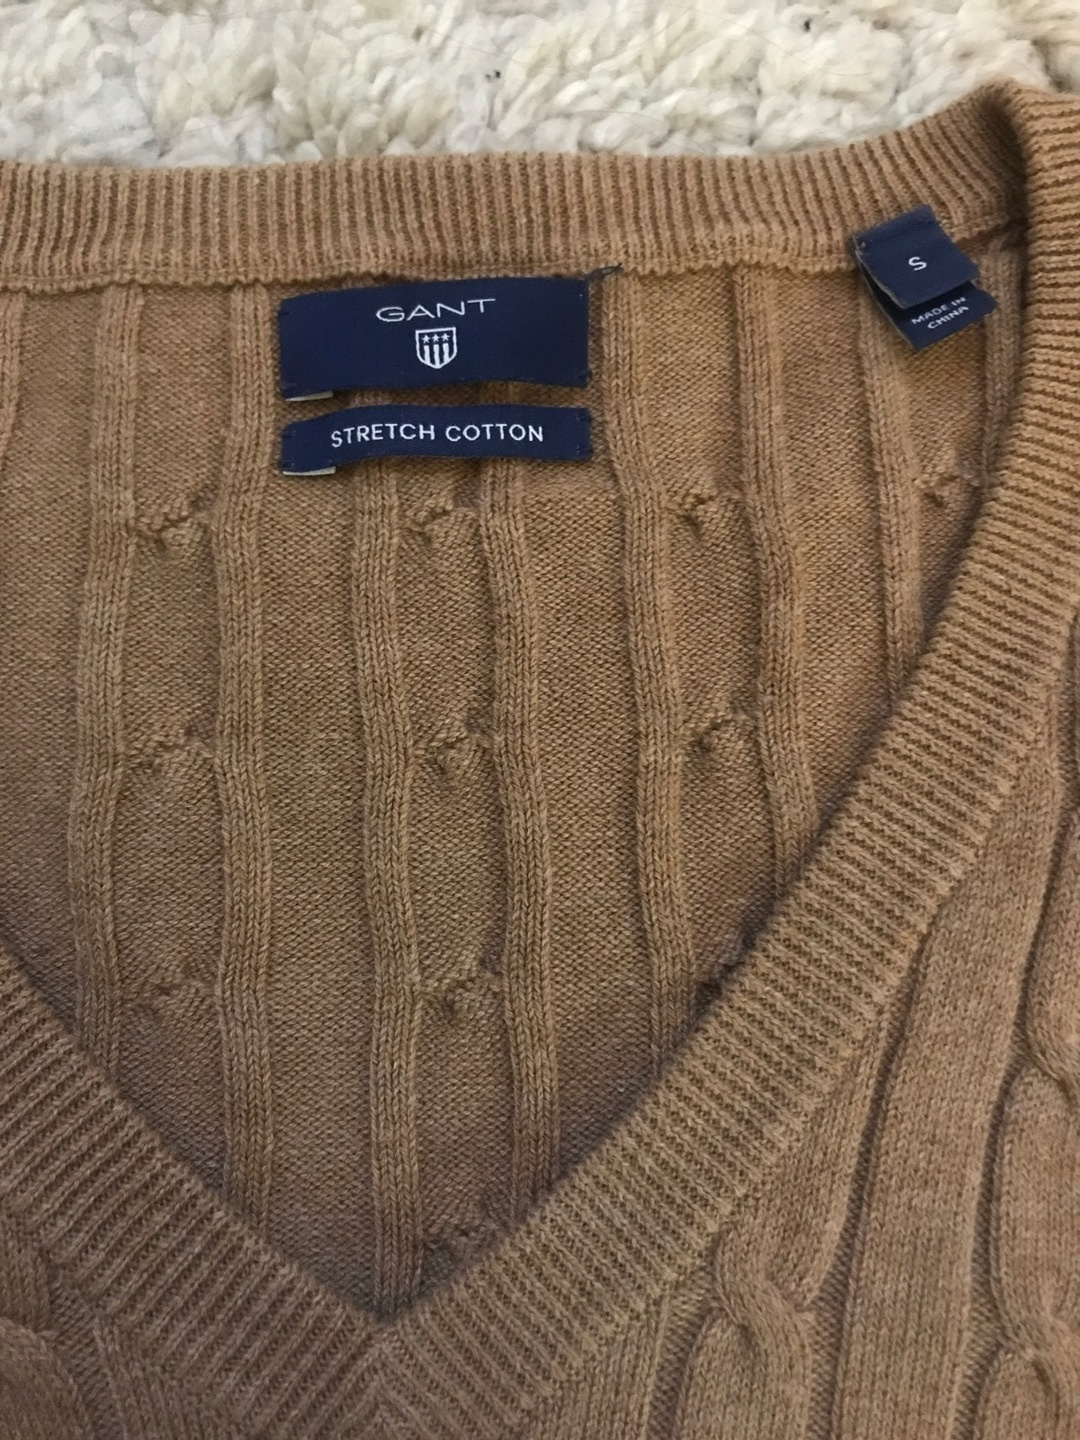 Women's jumpers & cardigans - GANT photo 3